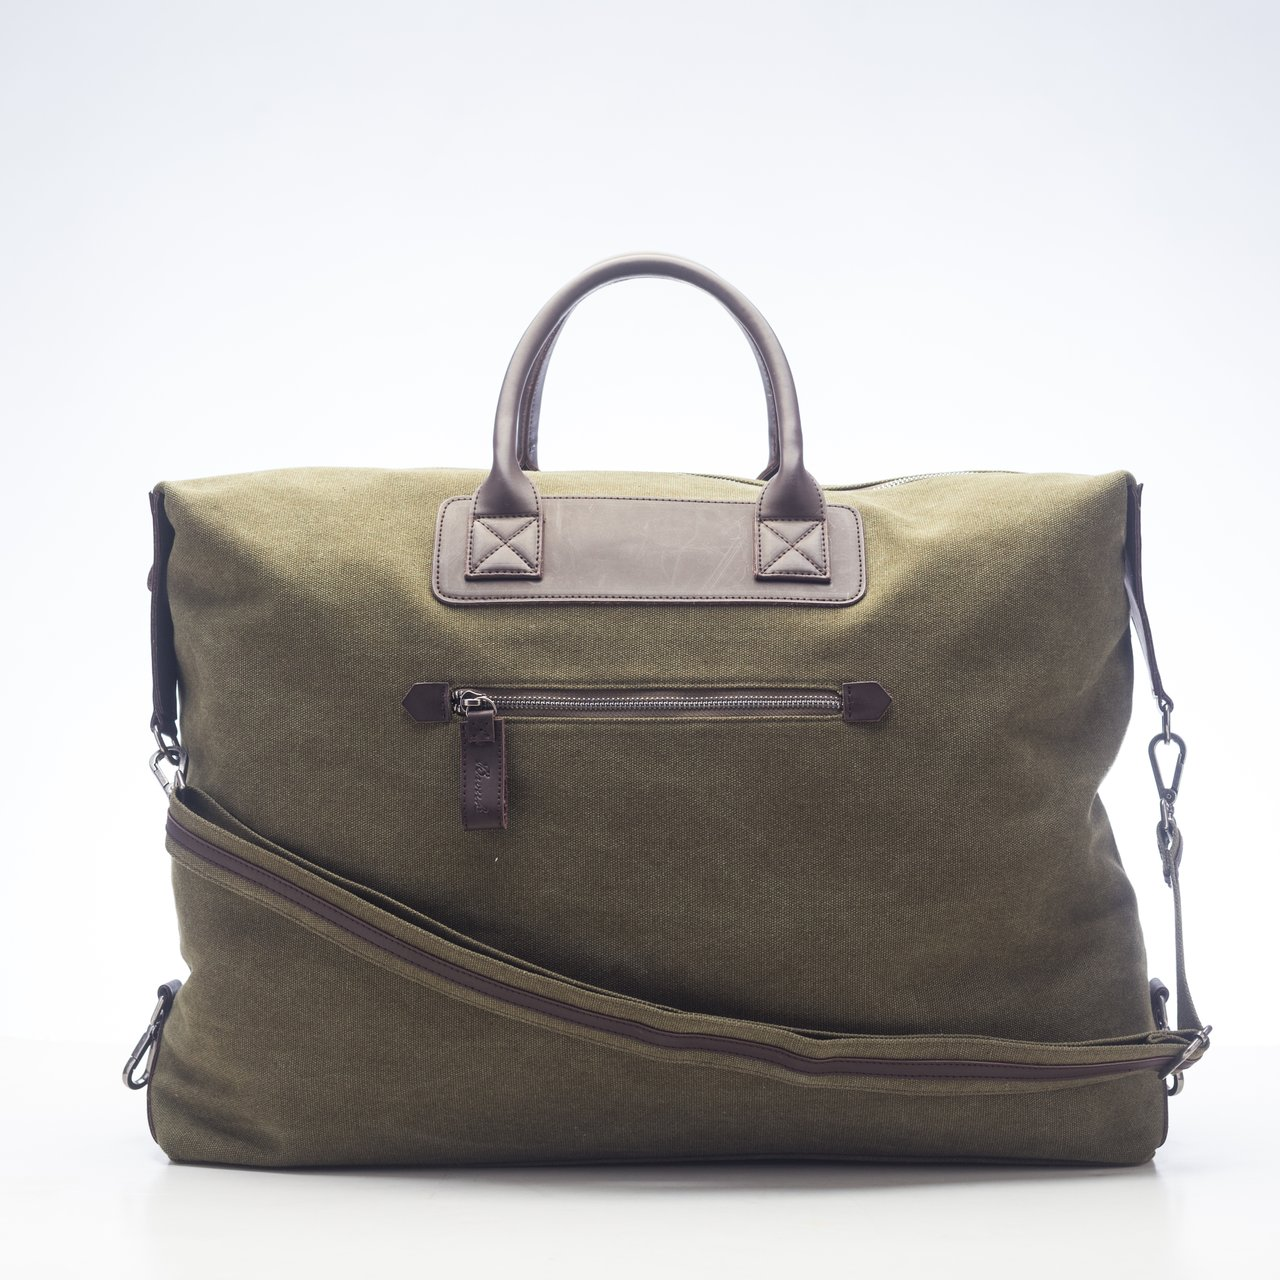 Excursion Weekender Bag in Olive